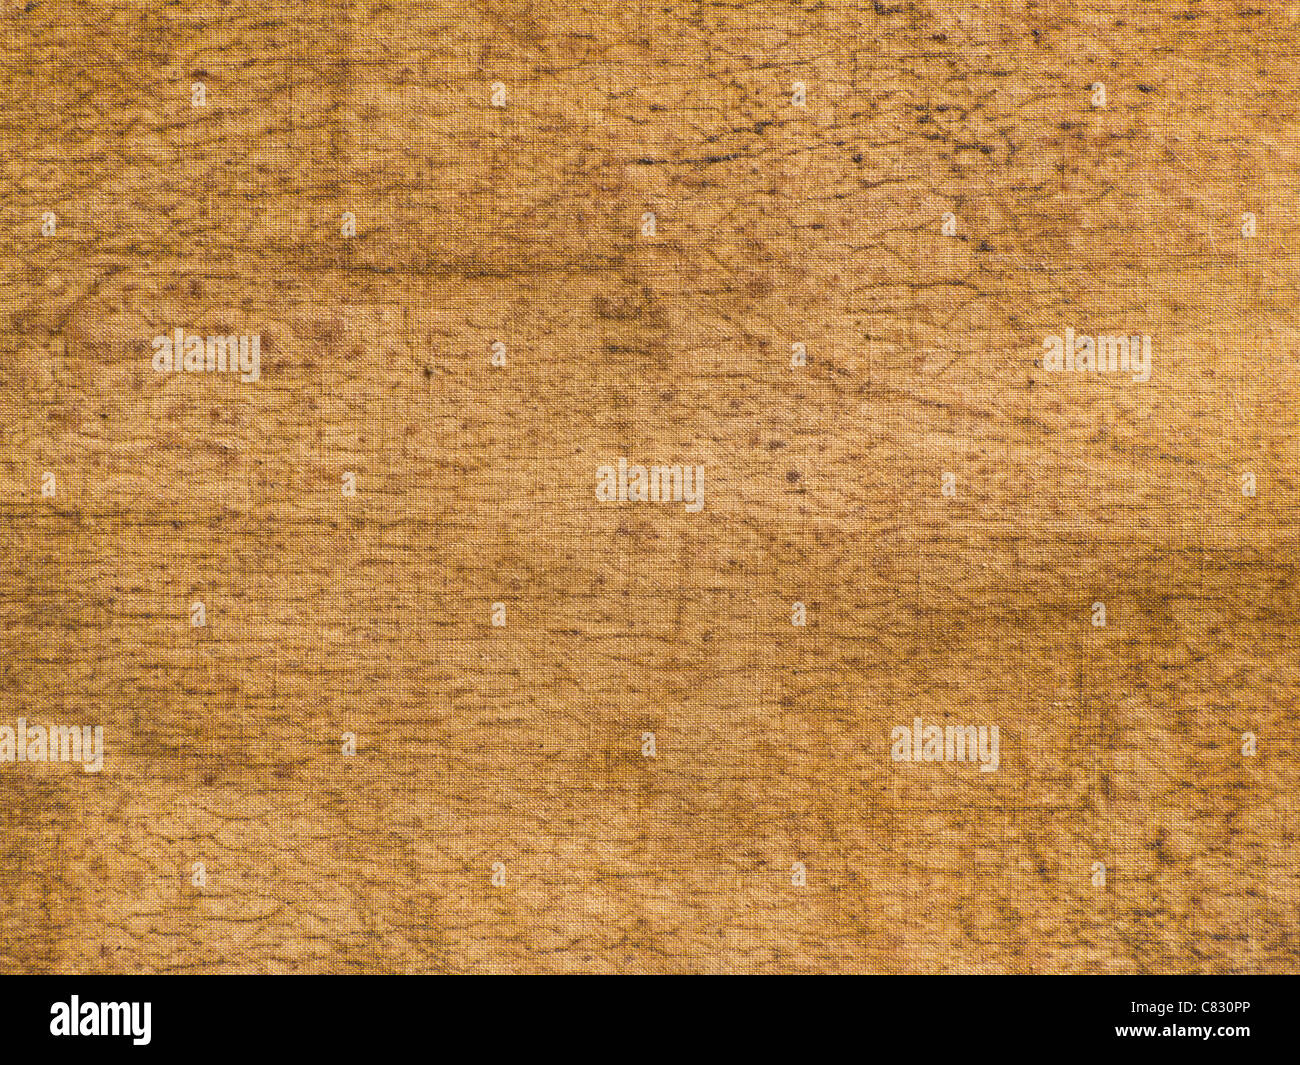 Grungy Canvas Texture - Stock Image